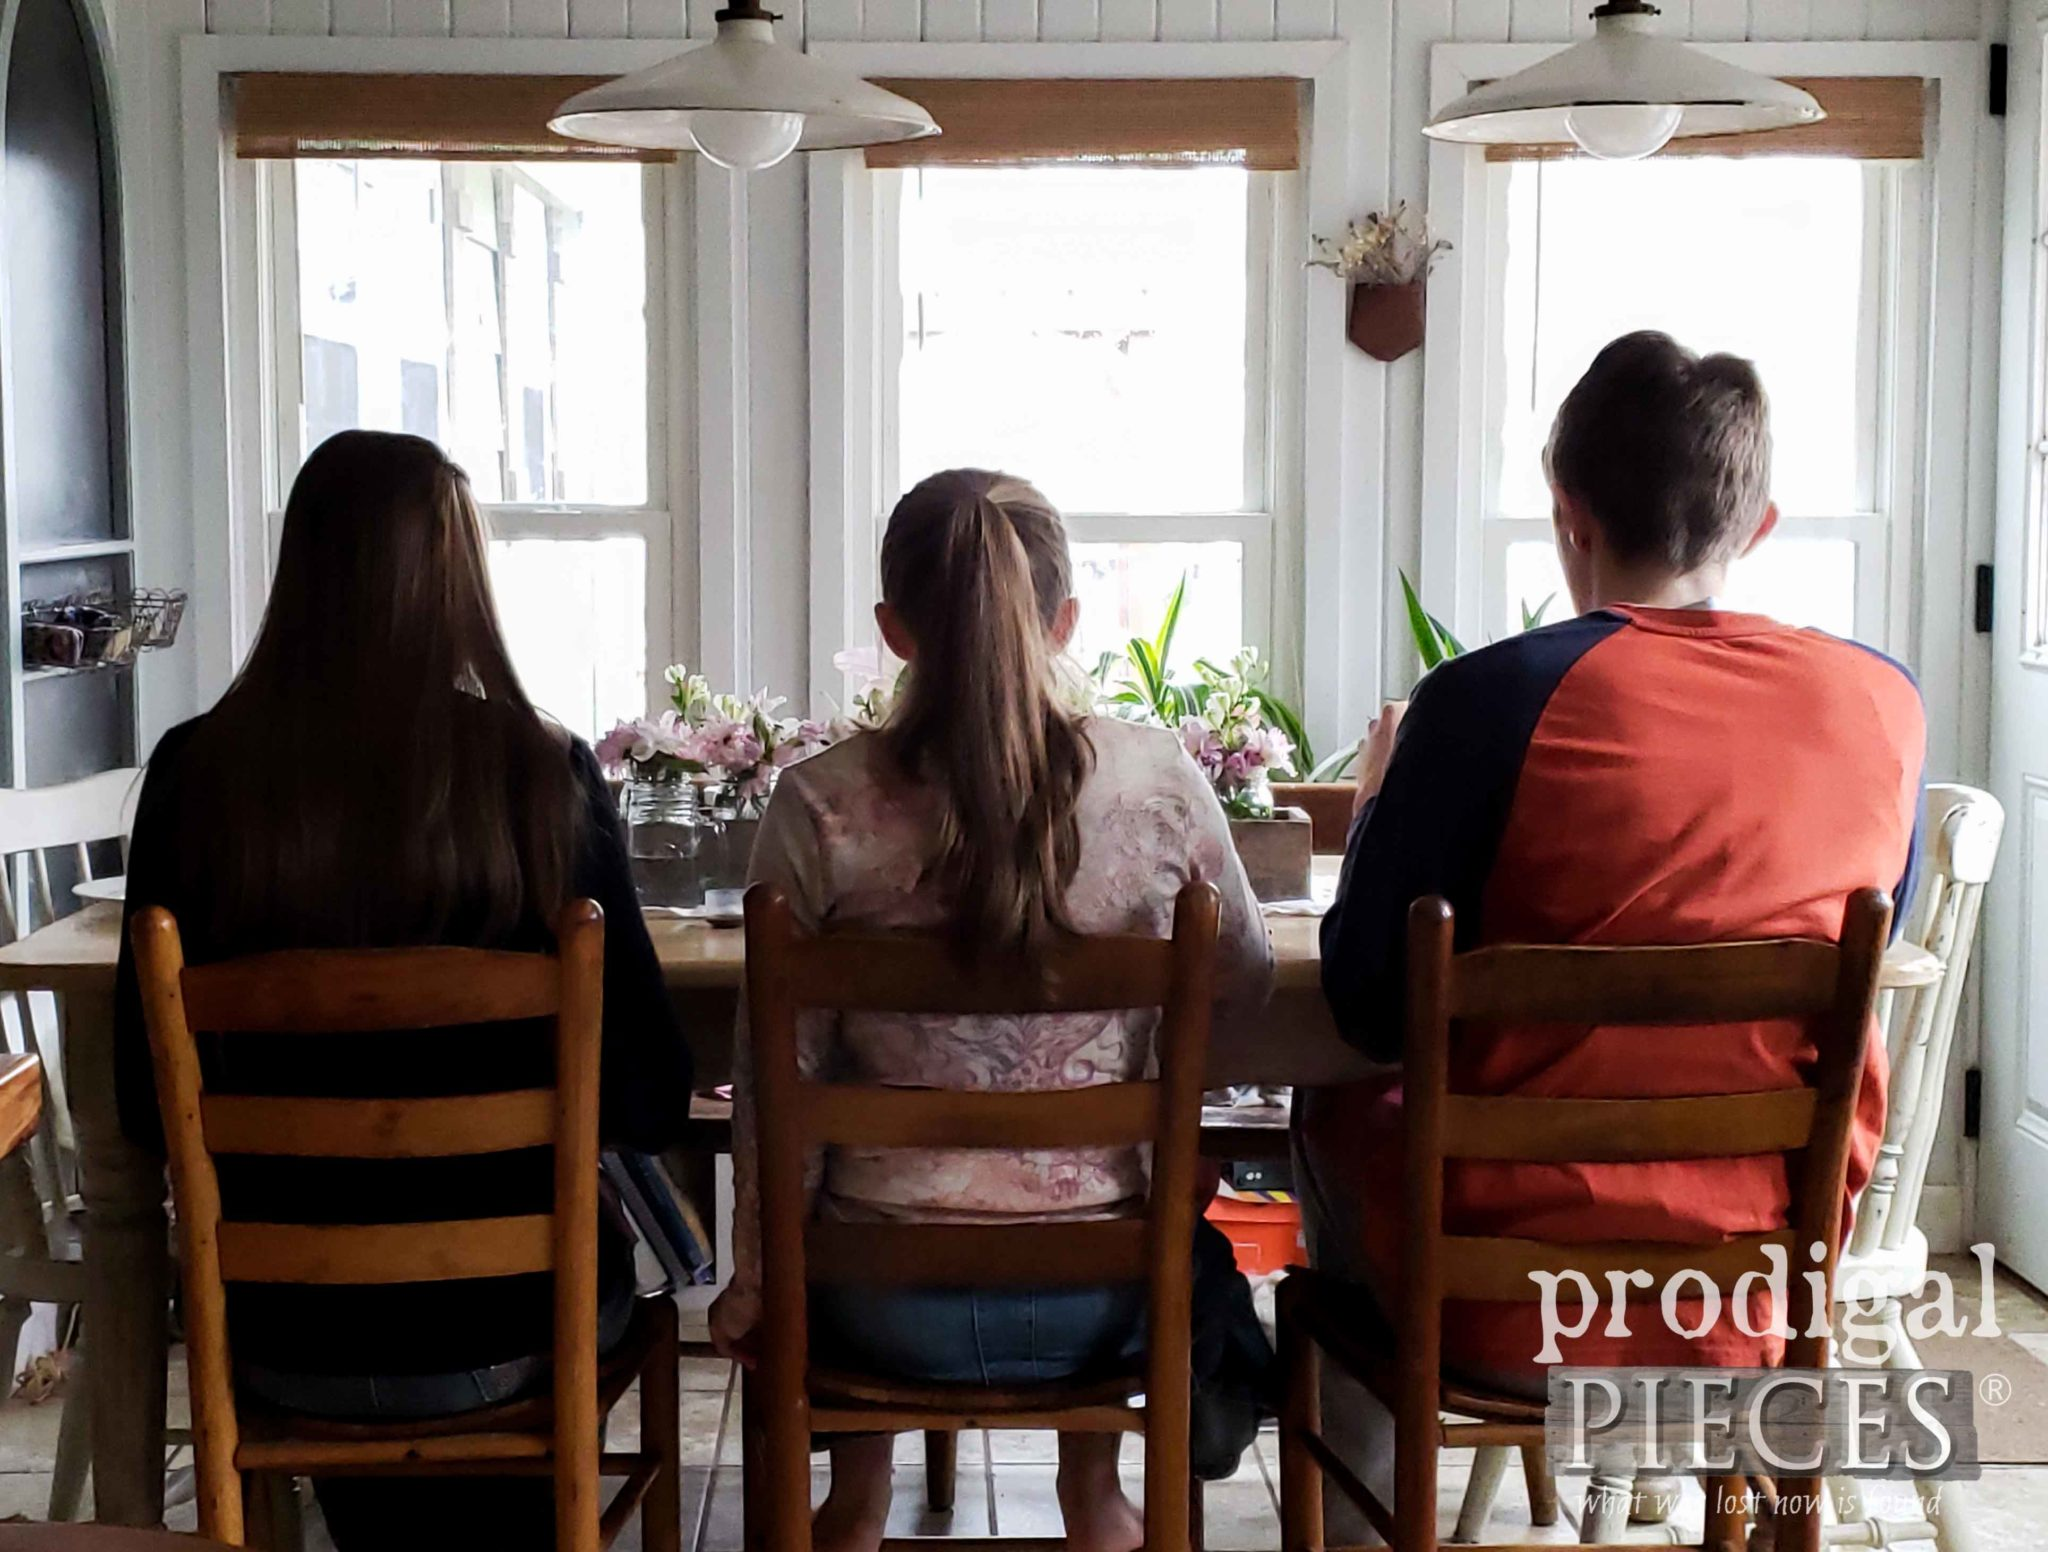 Teens at Dinner Table | Prodigal Pieces | prodigalpieces.com #prodigalpieces #homeisthekey #home